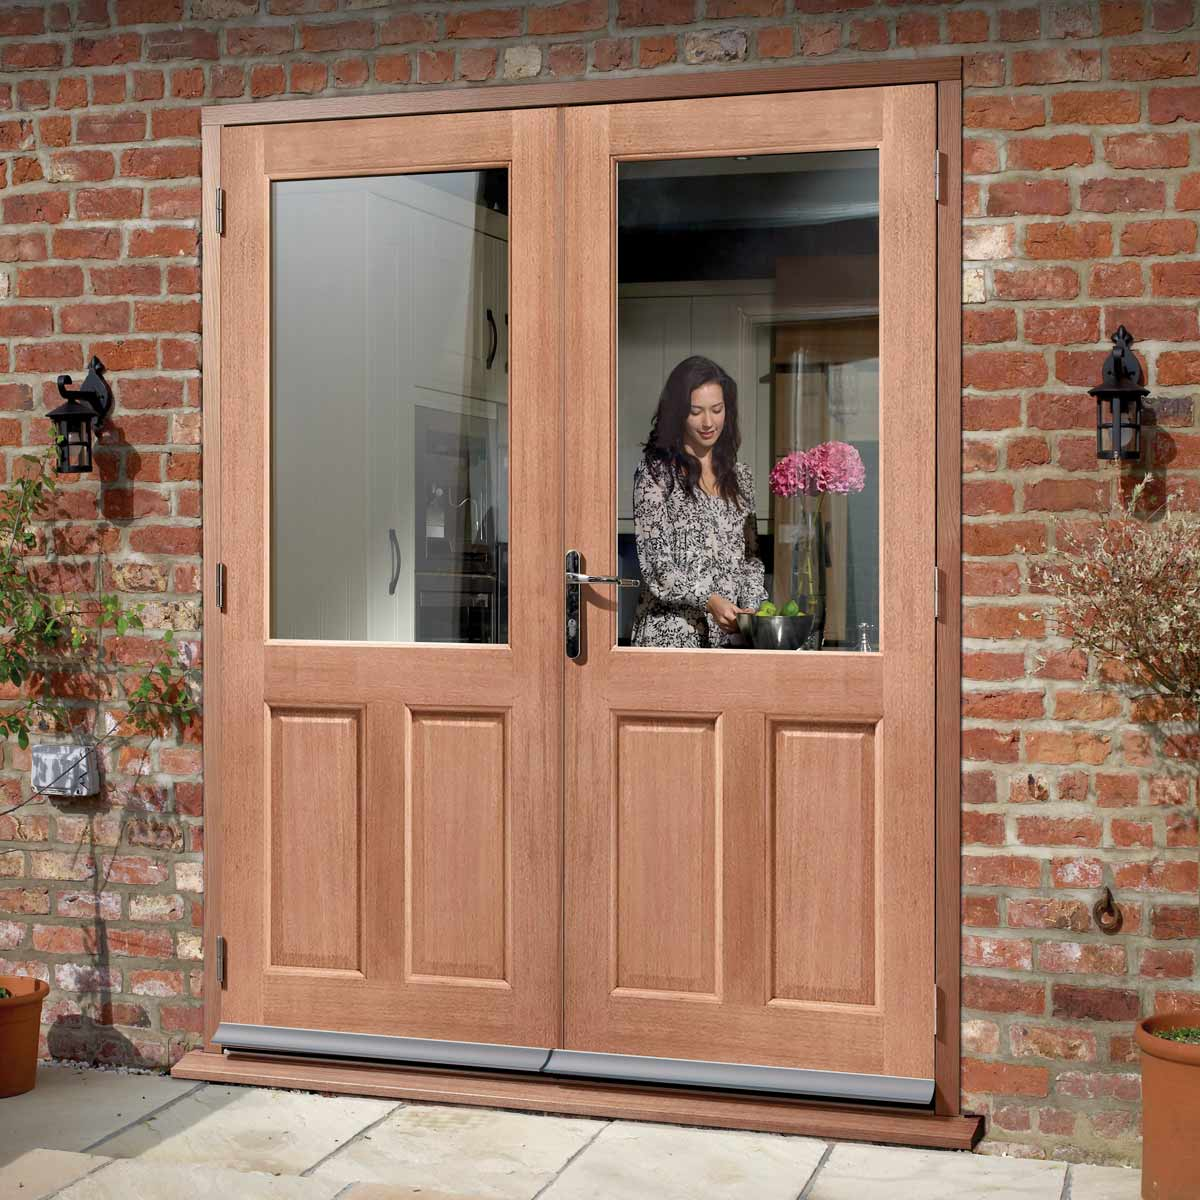 2XG External Mahogany Dowelled Double Door and Frame Set - Clear Double Glazing